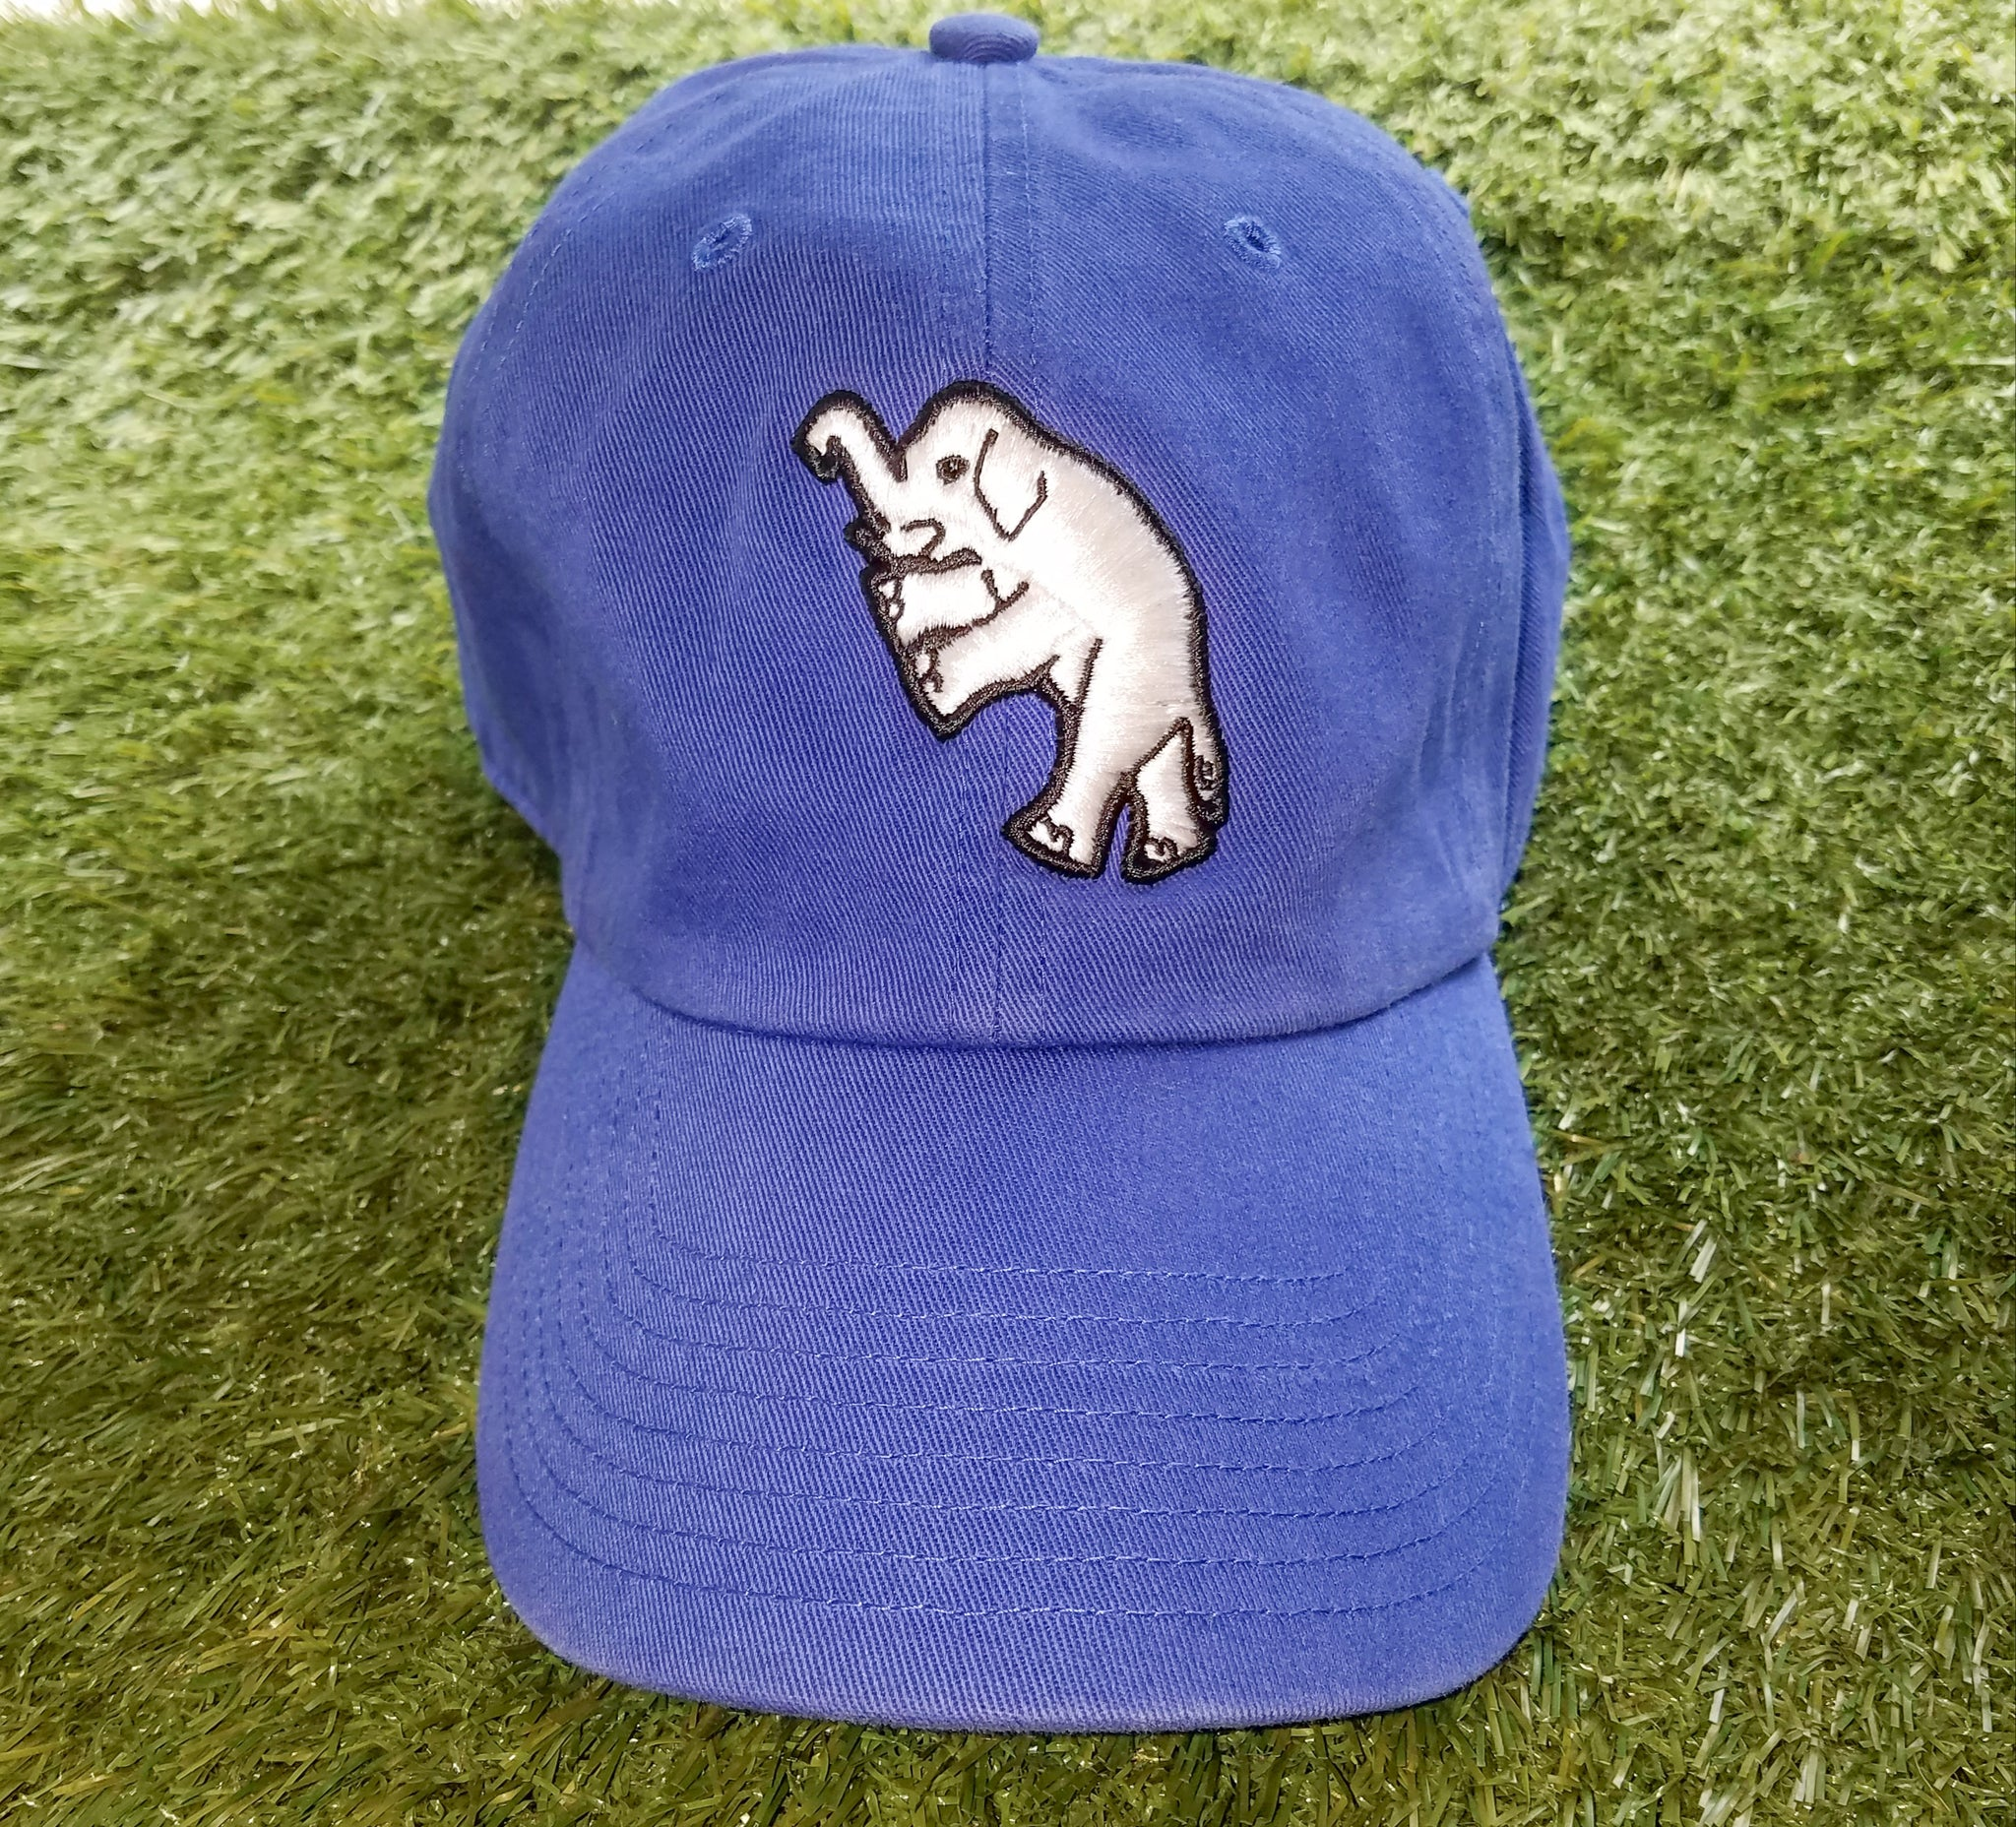 3588eaa773af4 Philadelphia Athletics Elephant Adjustable Royal Blue Cap - Shibe Vintage  Sports